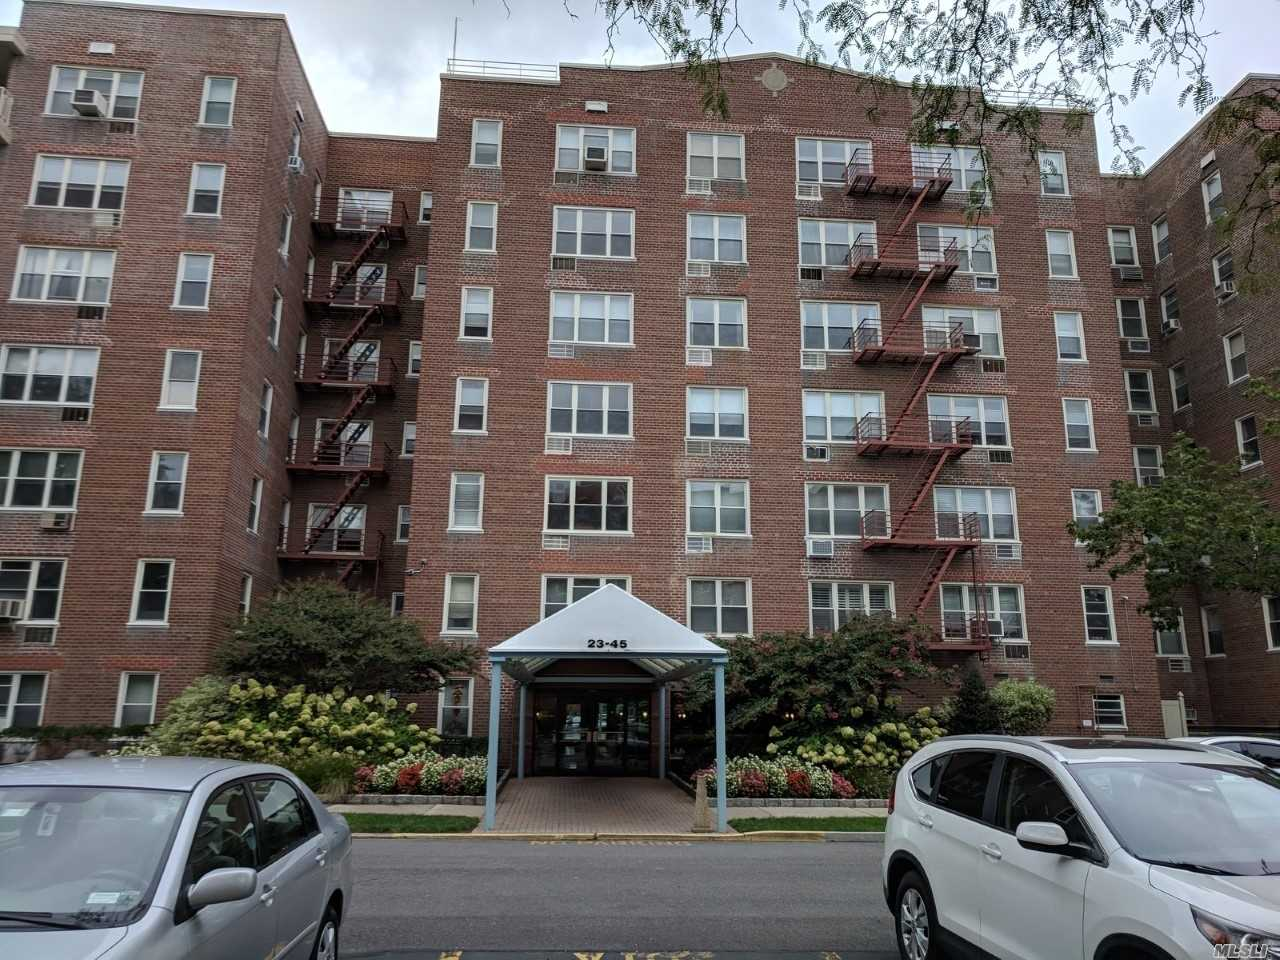 Location, Location, Location, Spacious Two Bedroom With Full Eat In Kitchen, Closets Galore, Everything At Your Door Step, 1/2 Block To Shopping Center, Two Blocks To Ps 169, Library, Express Bus To Manhattan, Bus To Lirr, All Shopping And Transportation For Your Convenience...